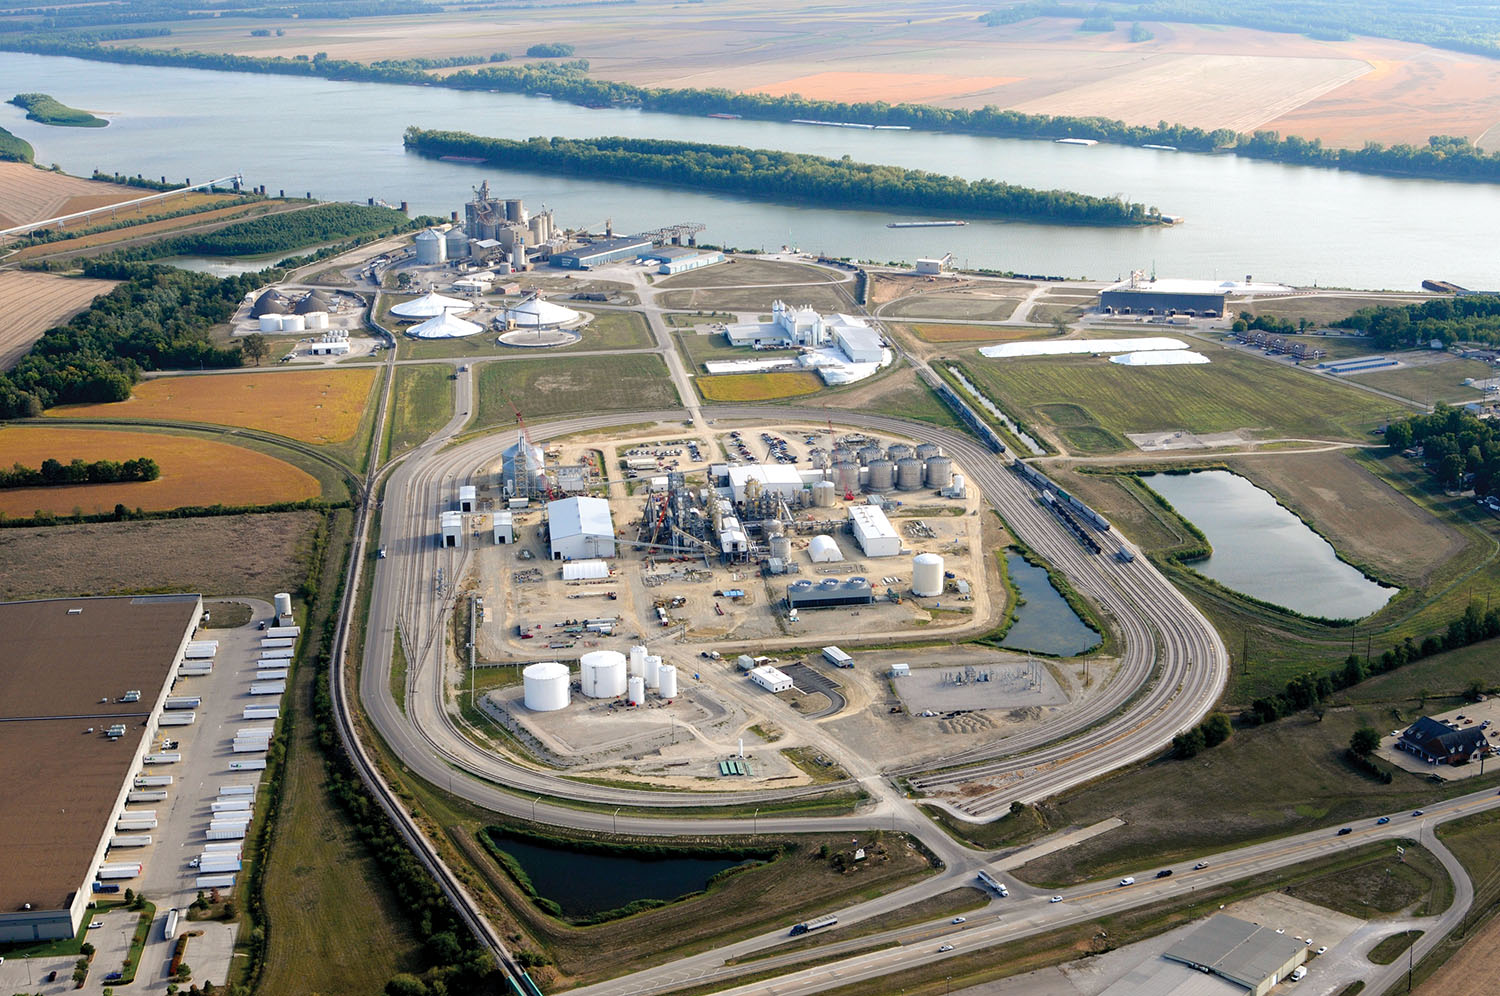 The port has nearly 1,240 acres of land and 8,000 linear feet of riverfront, with more than 600 acres of greenfield industrial sites available for development. (Photo courtesy of Port of Indiana—Mount Vernon)